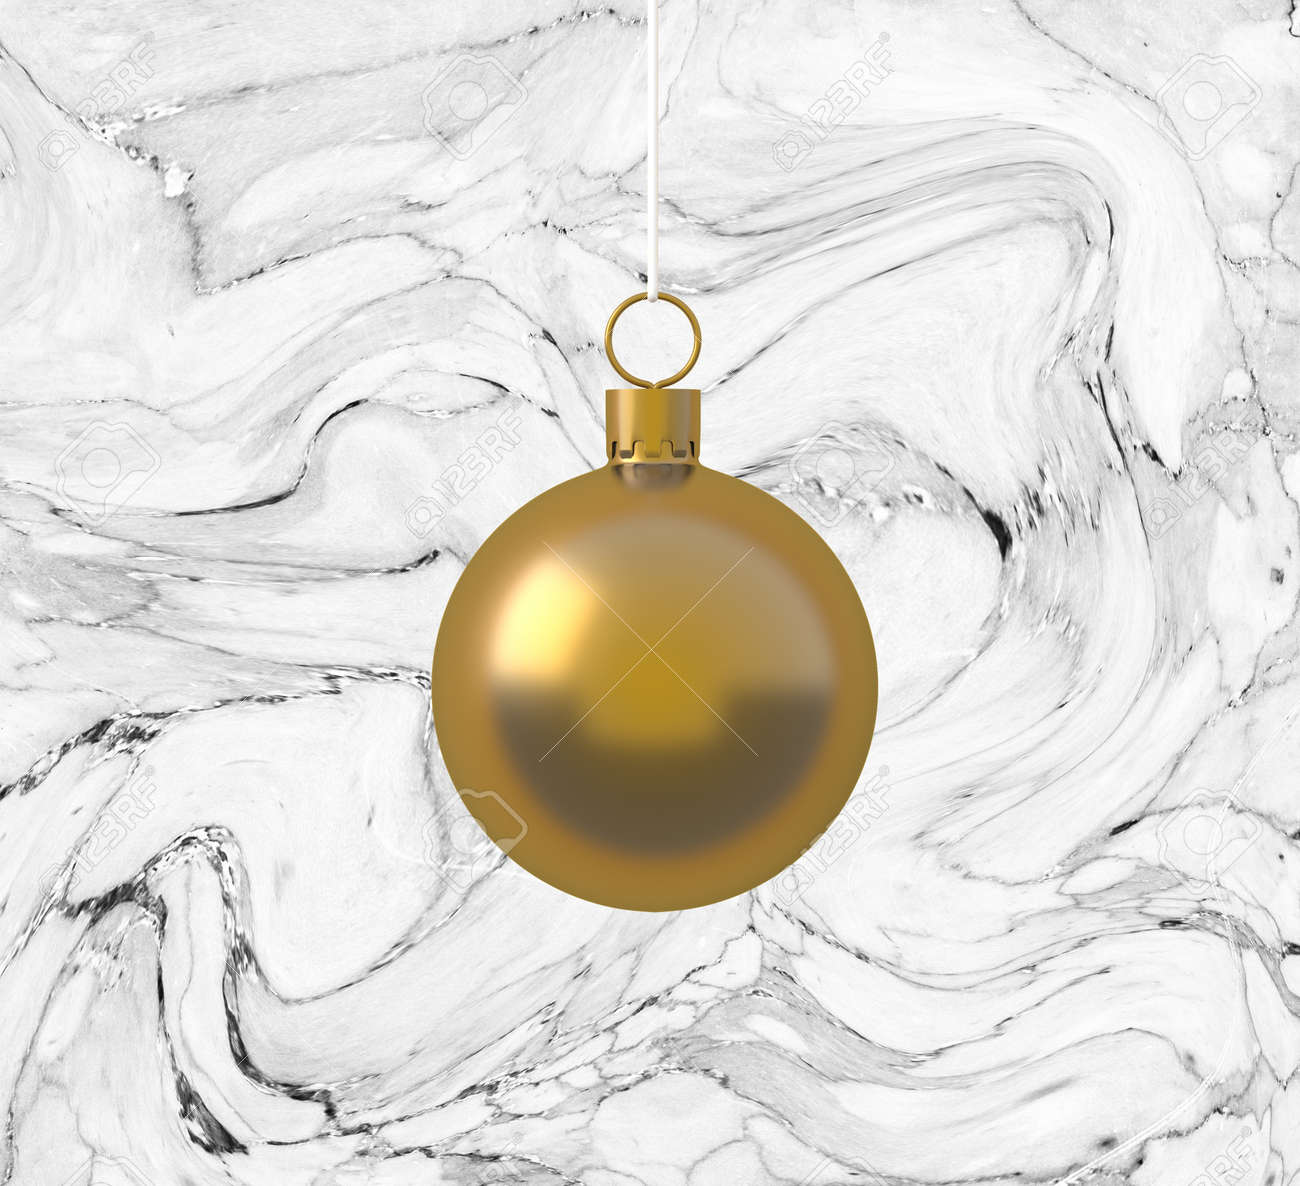 Golden christmas ball ornaments hanging on marble white background